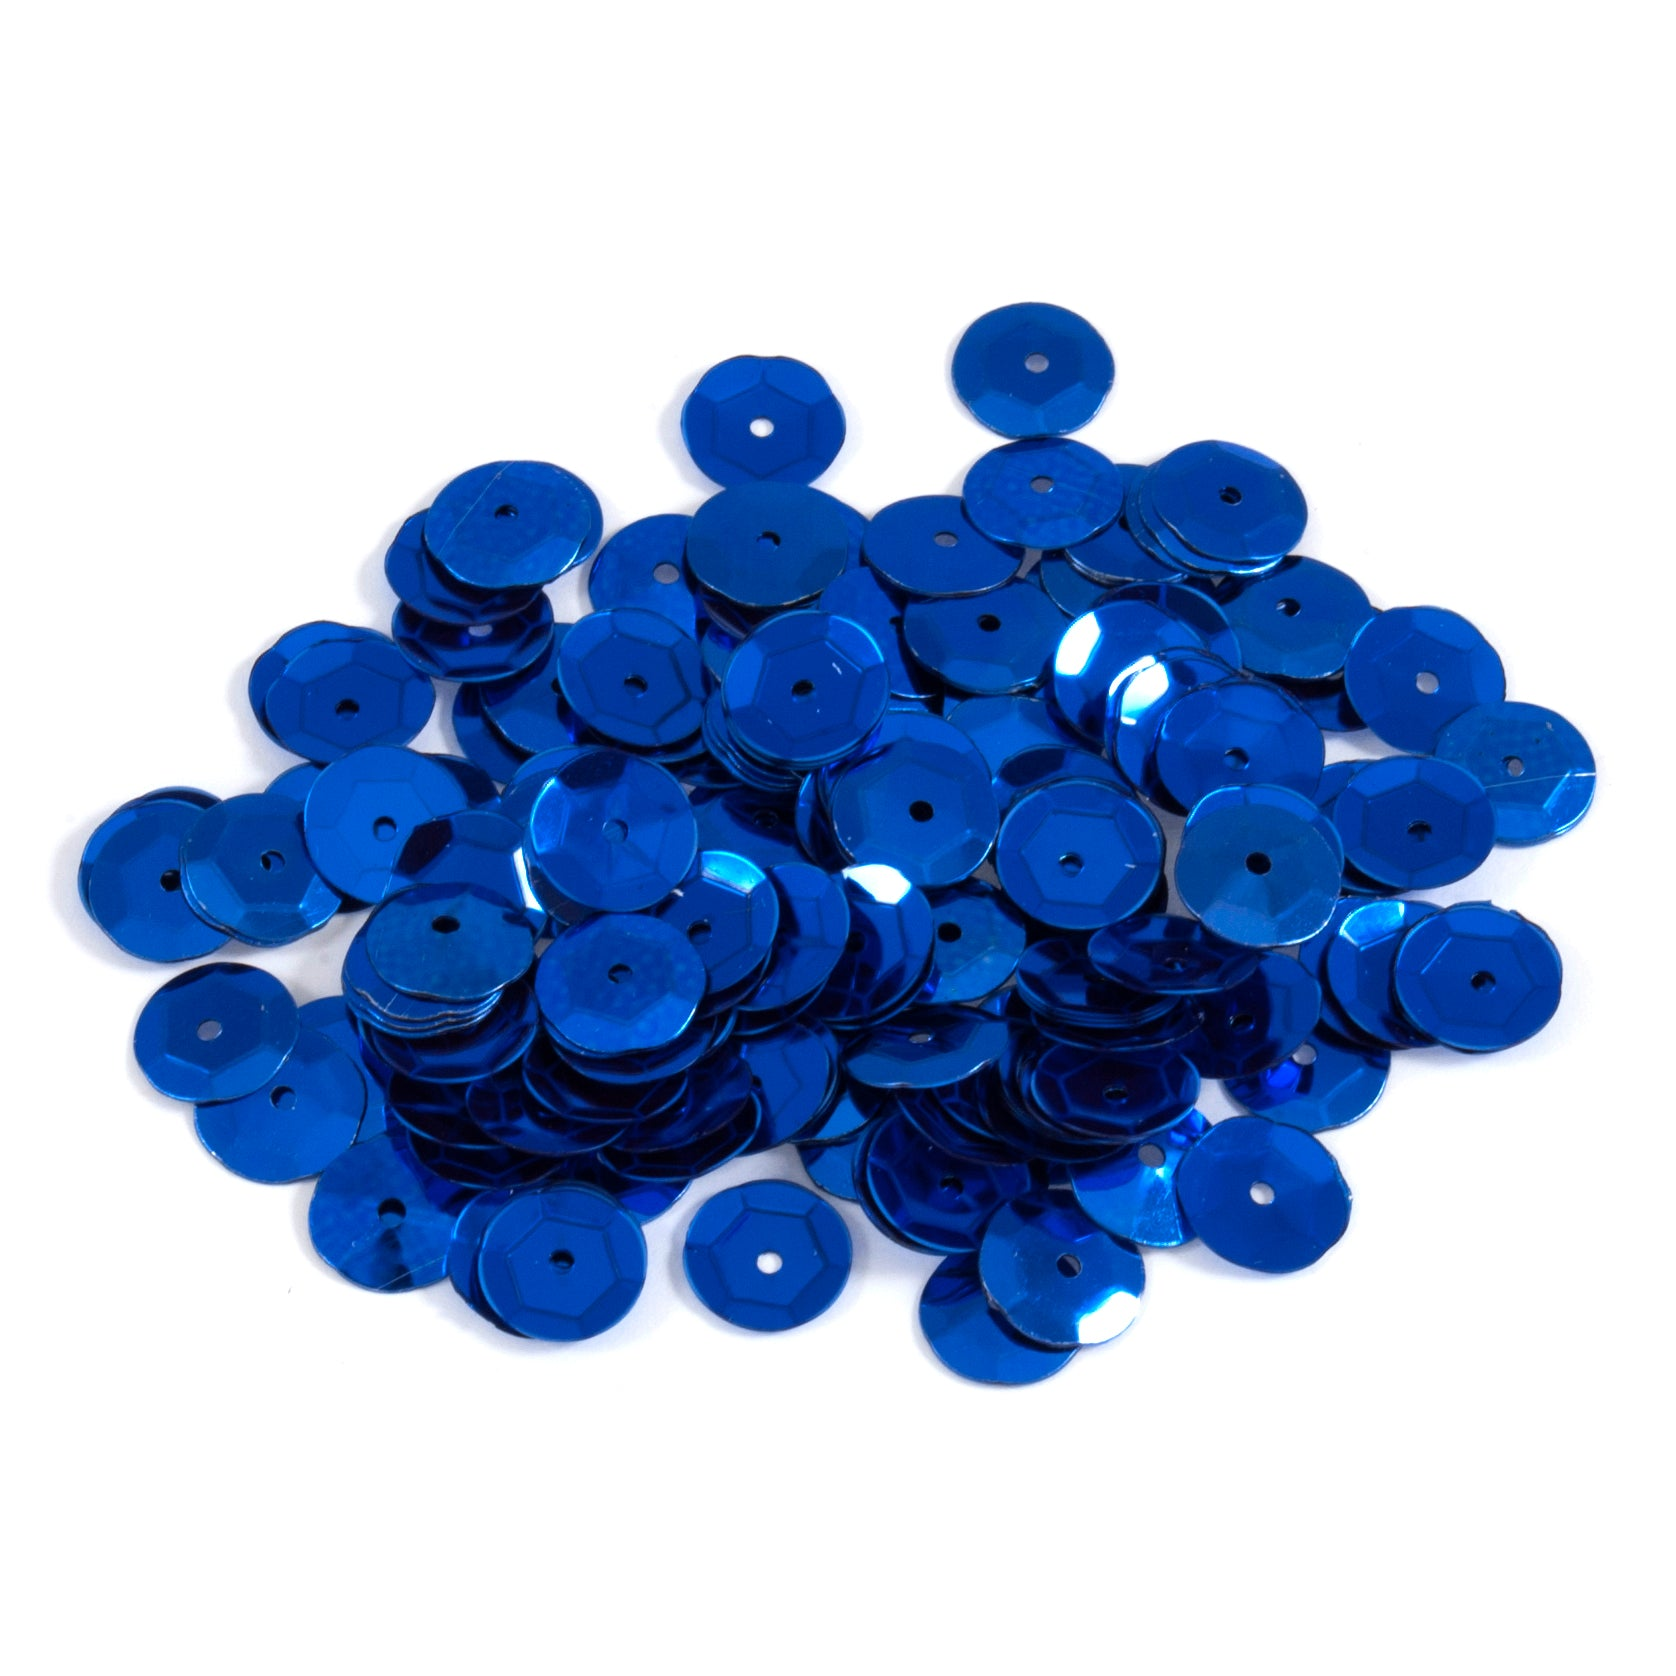 8 mm Royal Blue Cup Craft Sequins, Trimits 9280/05, Pack of 600